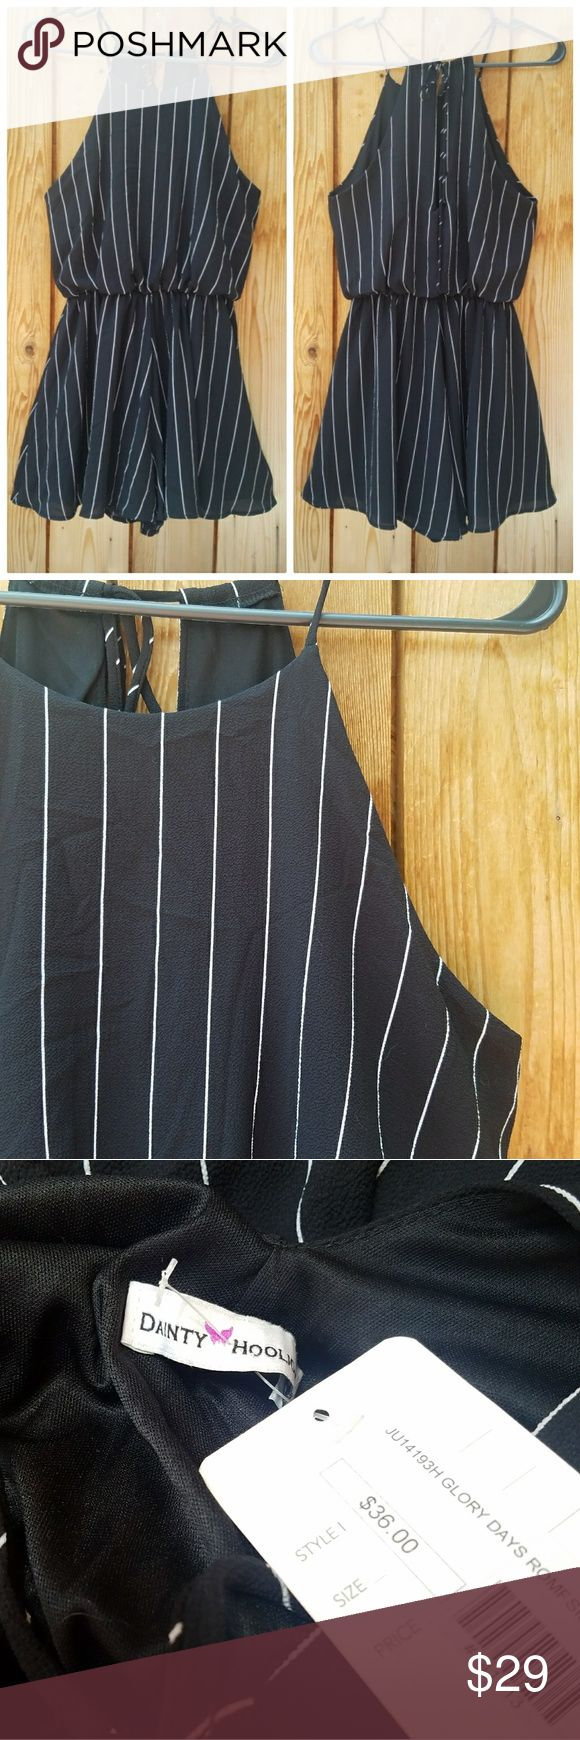 NWT Dainty Hooligan Black & White Pinstripe Romper Gorgeous! High neck, strap ties in back with a cute keyhole. 31 in long, Excellent condition  Feel free to ask me any additional questions! Bundles of 3+ items are 15% off. No trades, or modeling. Happy Poshing! Dainty Hooligan Pants Jumpsuits & Rompers